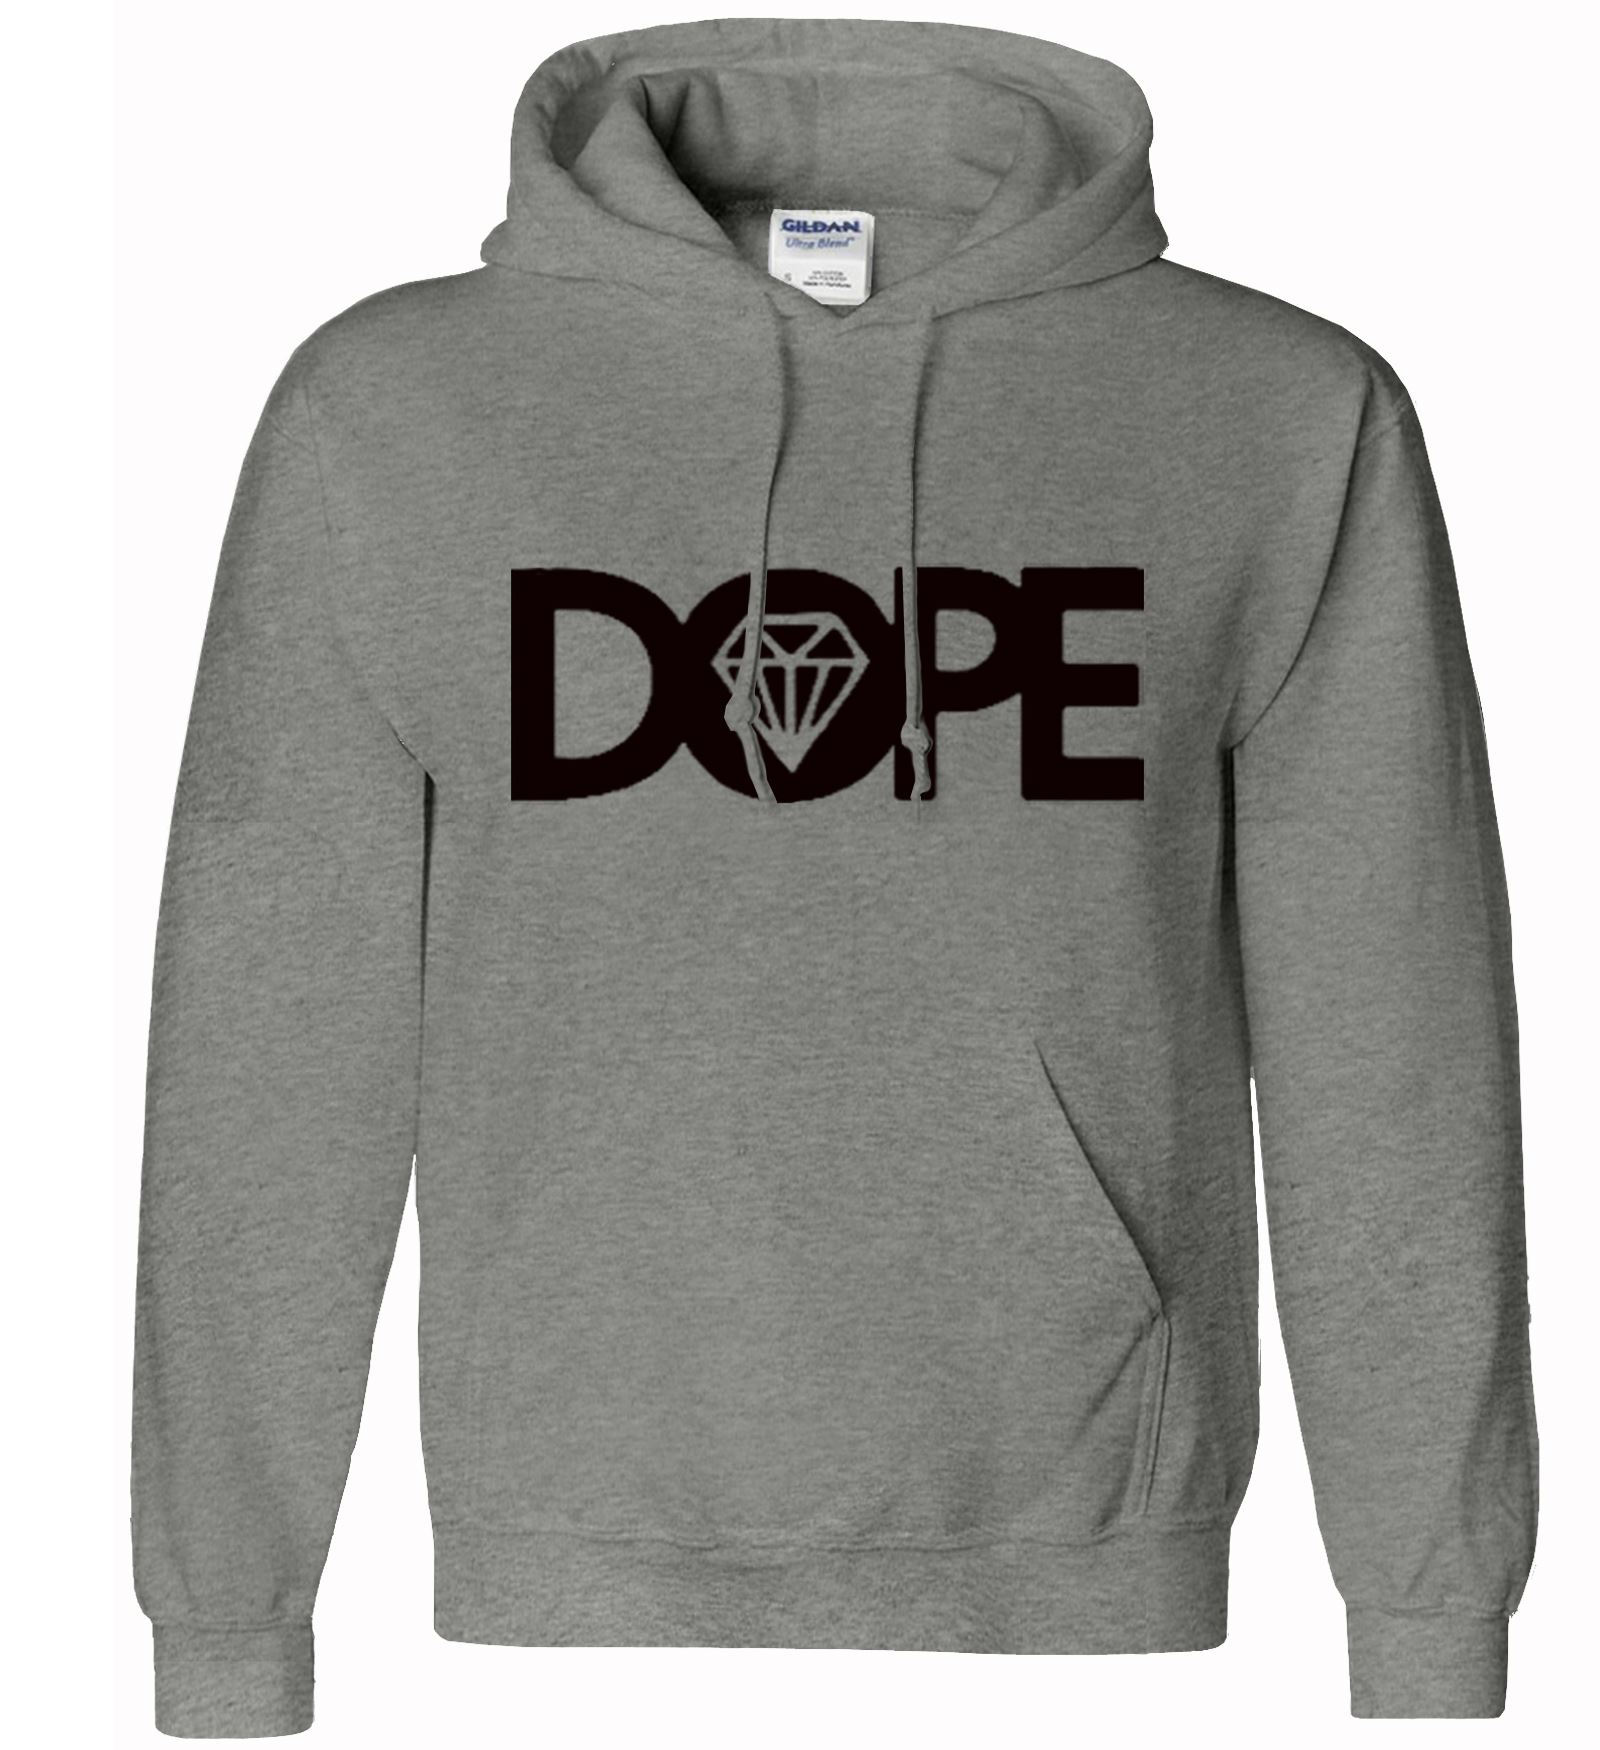 Men-Boy-Dope-Hoodie-Hooded-Sweatshirt-Pullover-Diamond-Hoody-Jumper-Sport-Casual